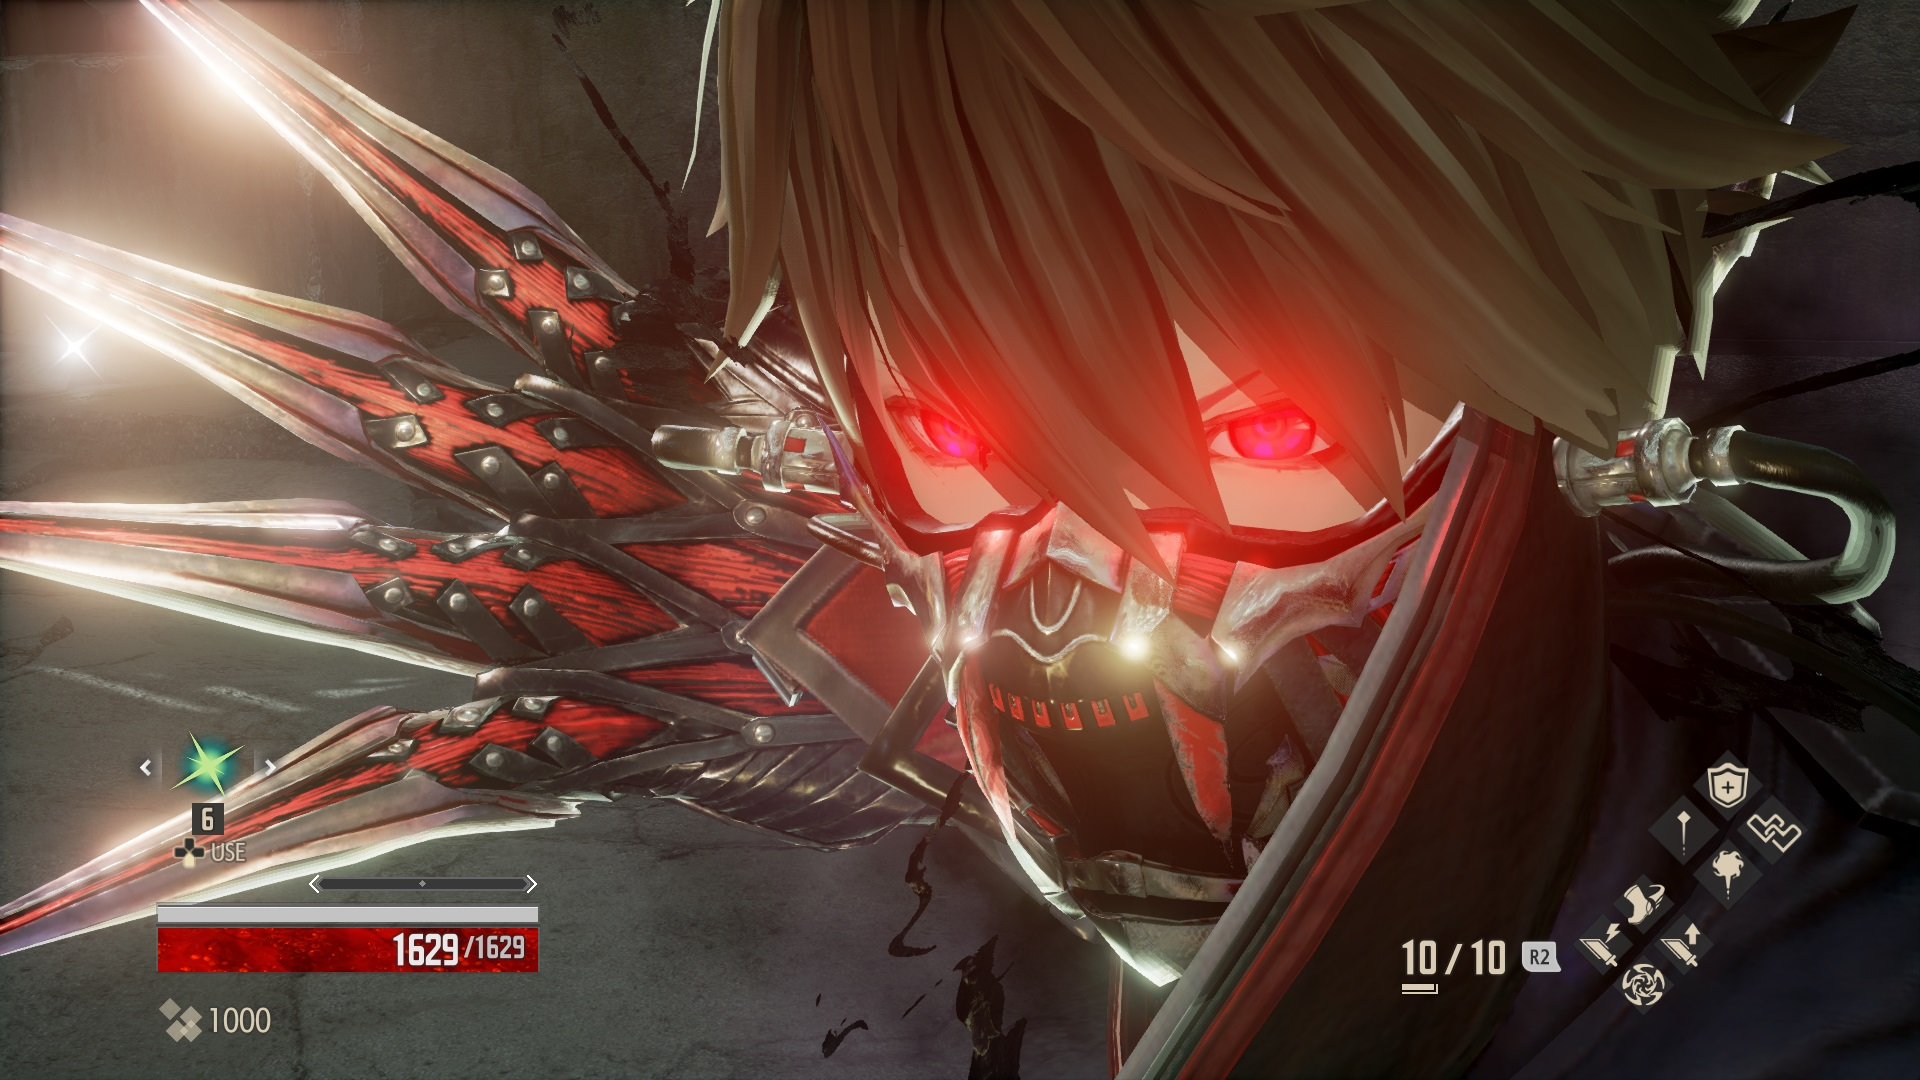 Witness A Bloodbath With Latest Code Vein Screenshots